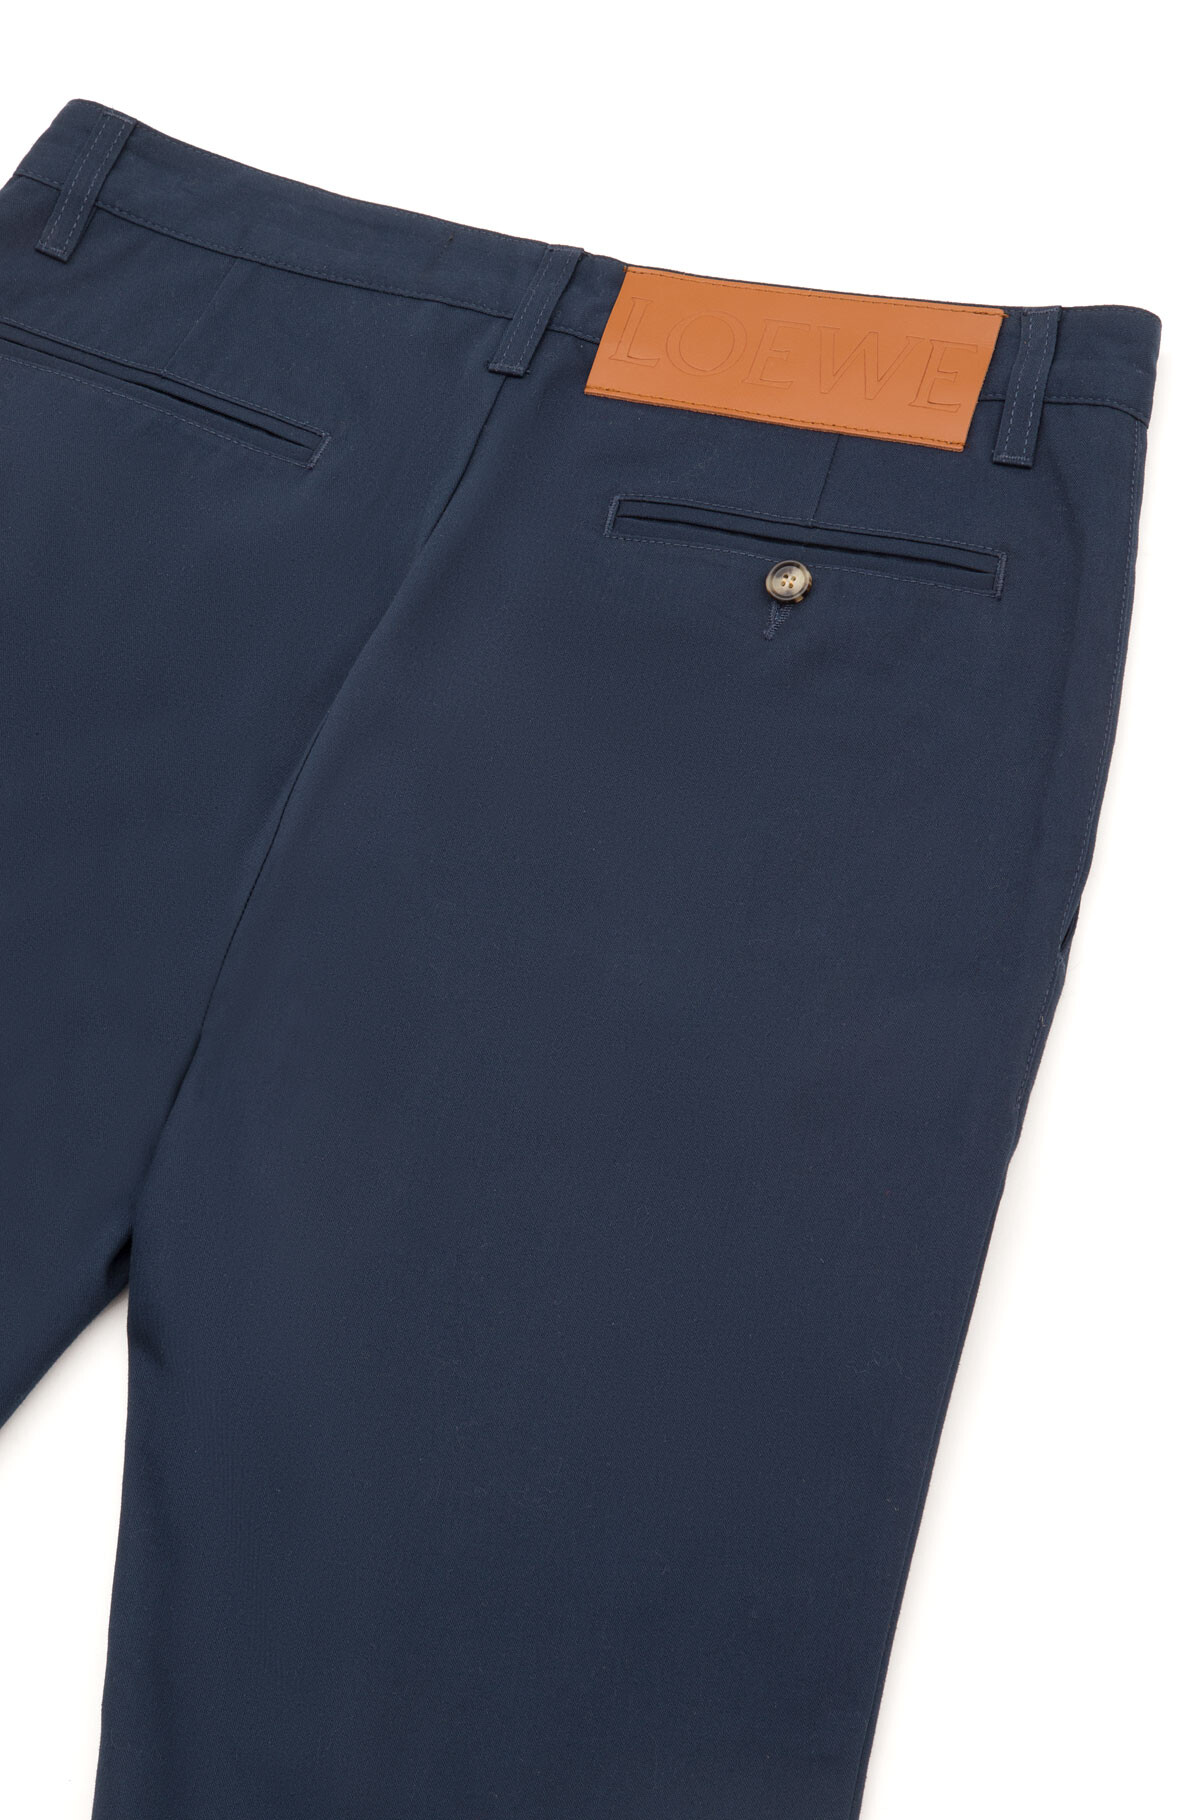 LOEWE Turn Up Chino Trousers Blue/Black front